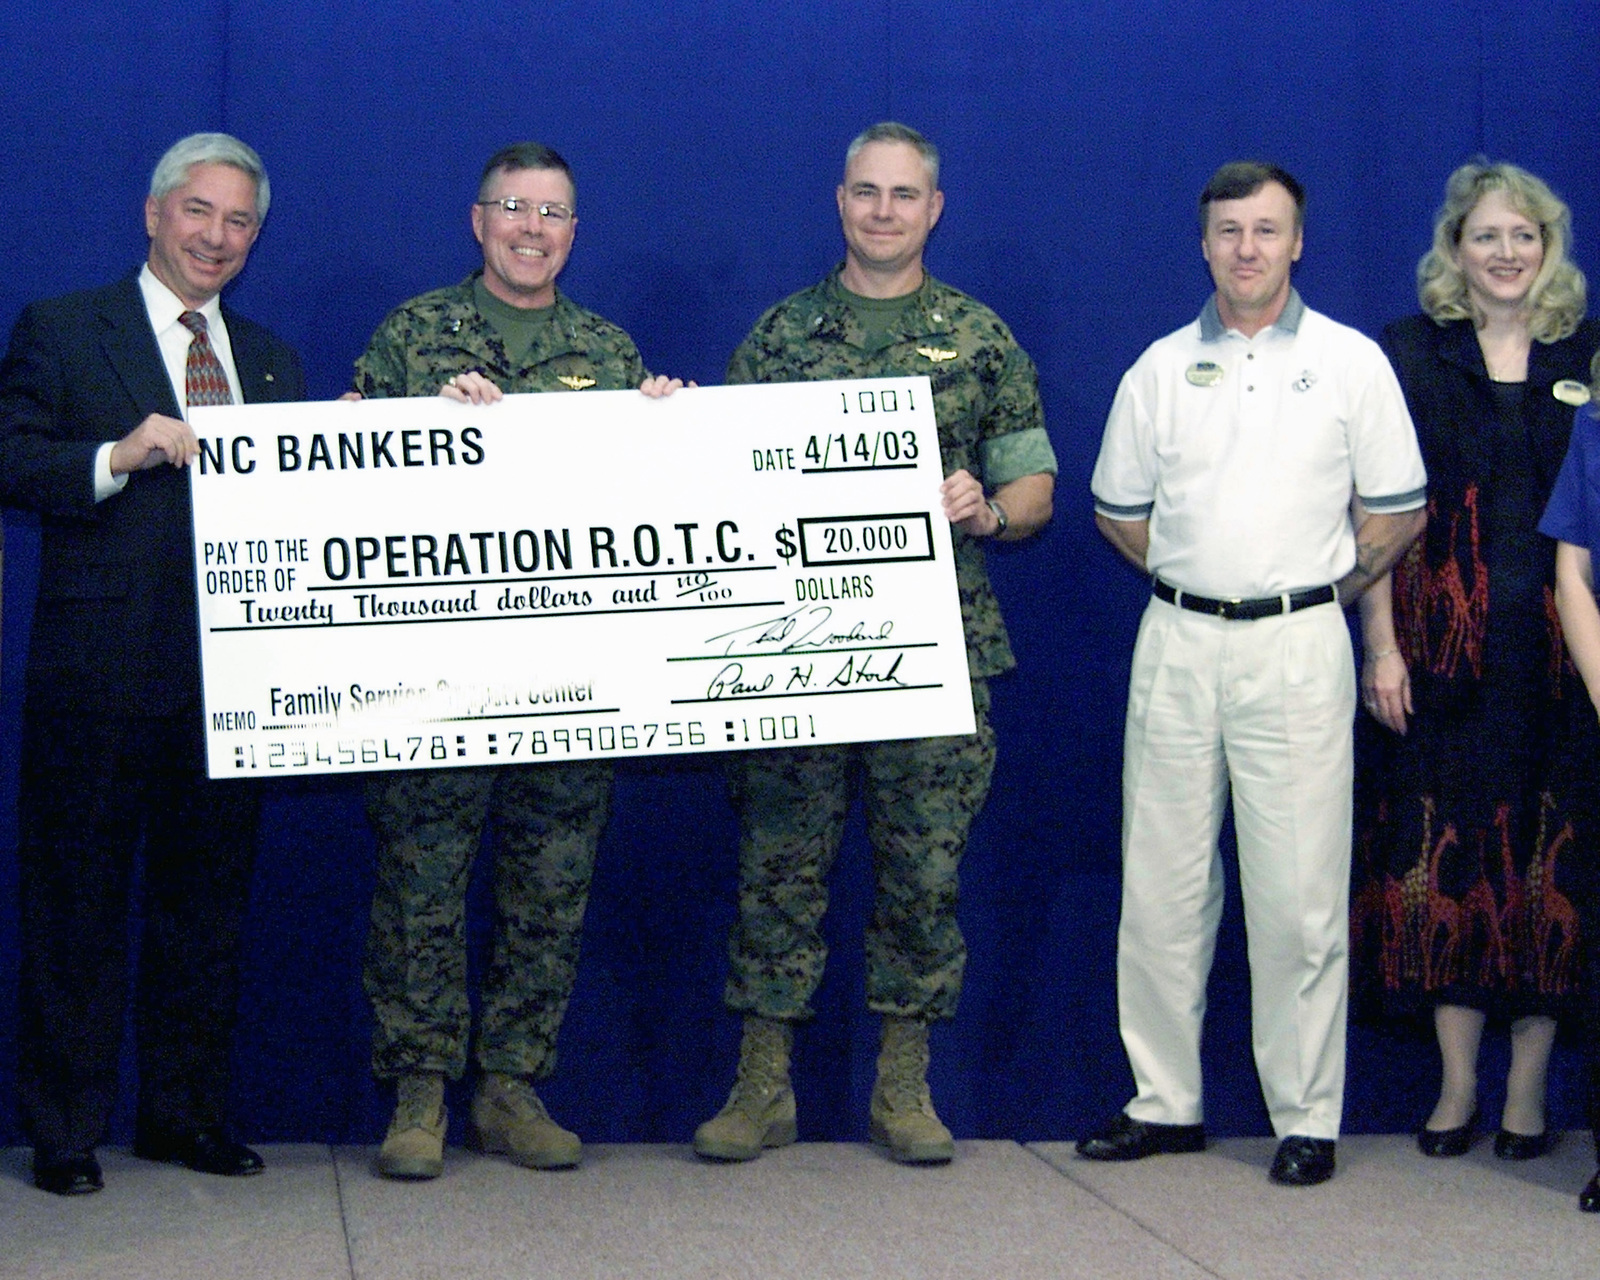 Thad Woodard, President of the North Carolina Bankers Association, presents a check for $20,000 to Major General (MGEN) Flannagen, Commanding General (CG) of Cherry Point, Marine Corps Air Bases Eastern Area and Lieutenant Colonel (LTCOL) Karl S. Elebash, Executive Officer (EO) of Marine Corps Air Station (MCAS) at New River